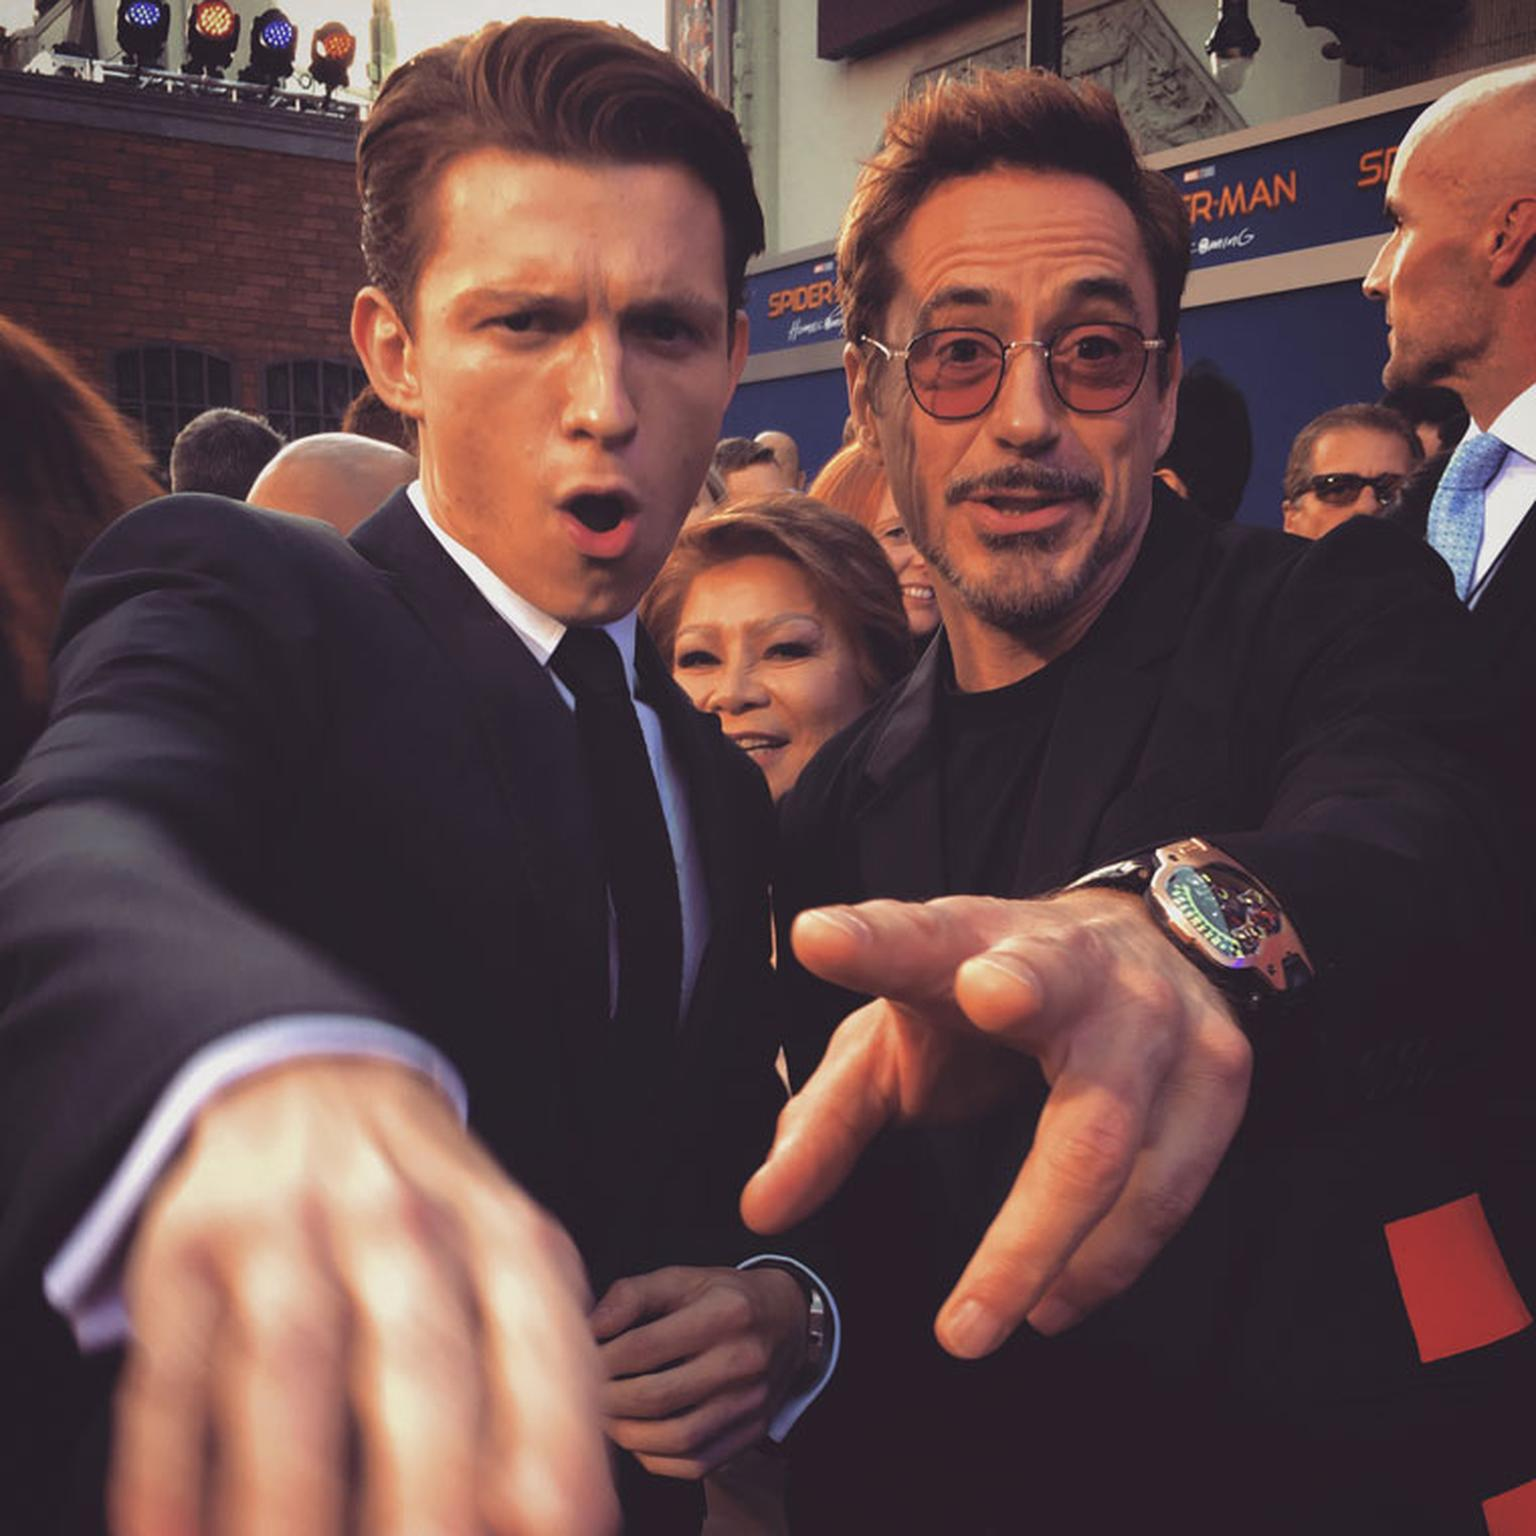 Tom Holland and Robert Downey Jr. wearing Urwerk UR-110 watch